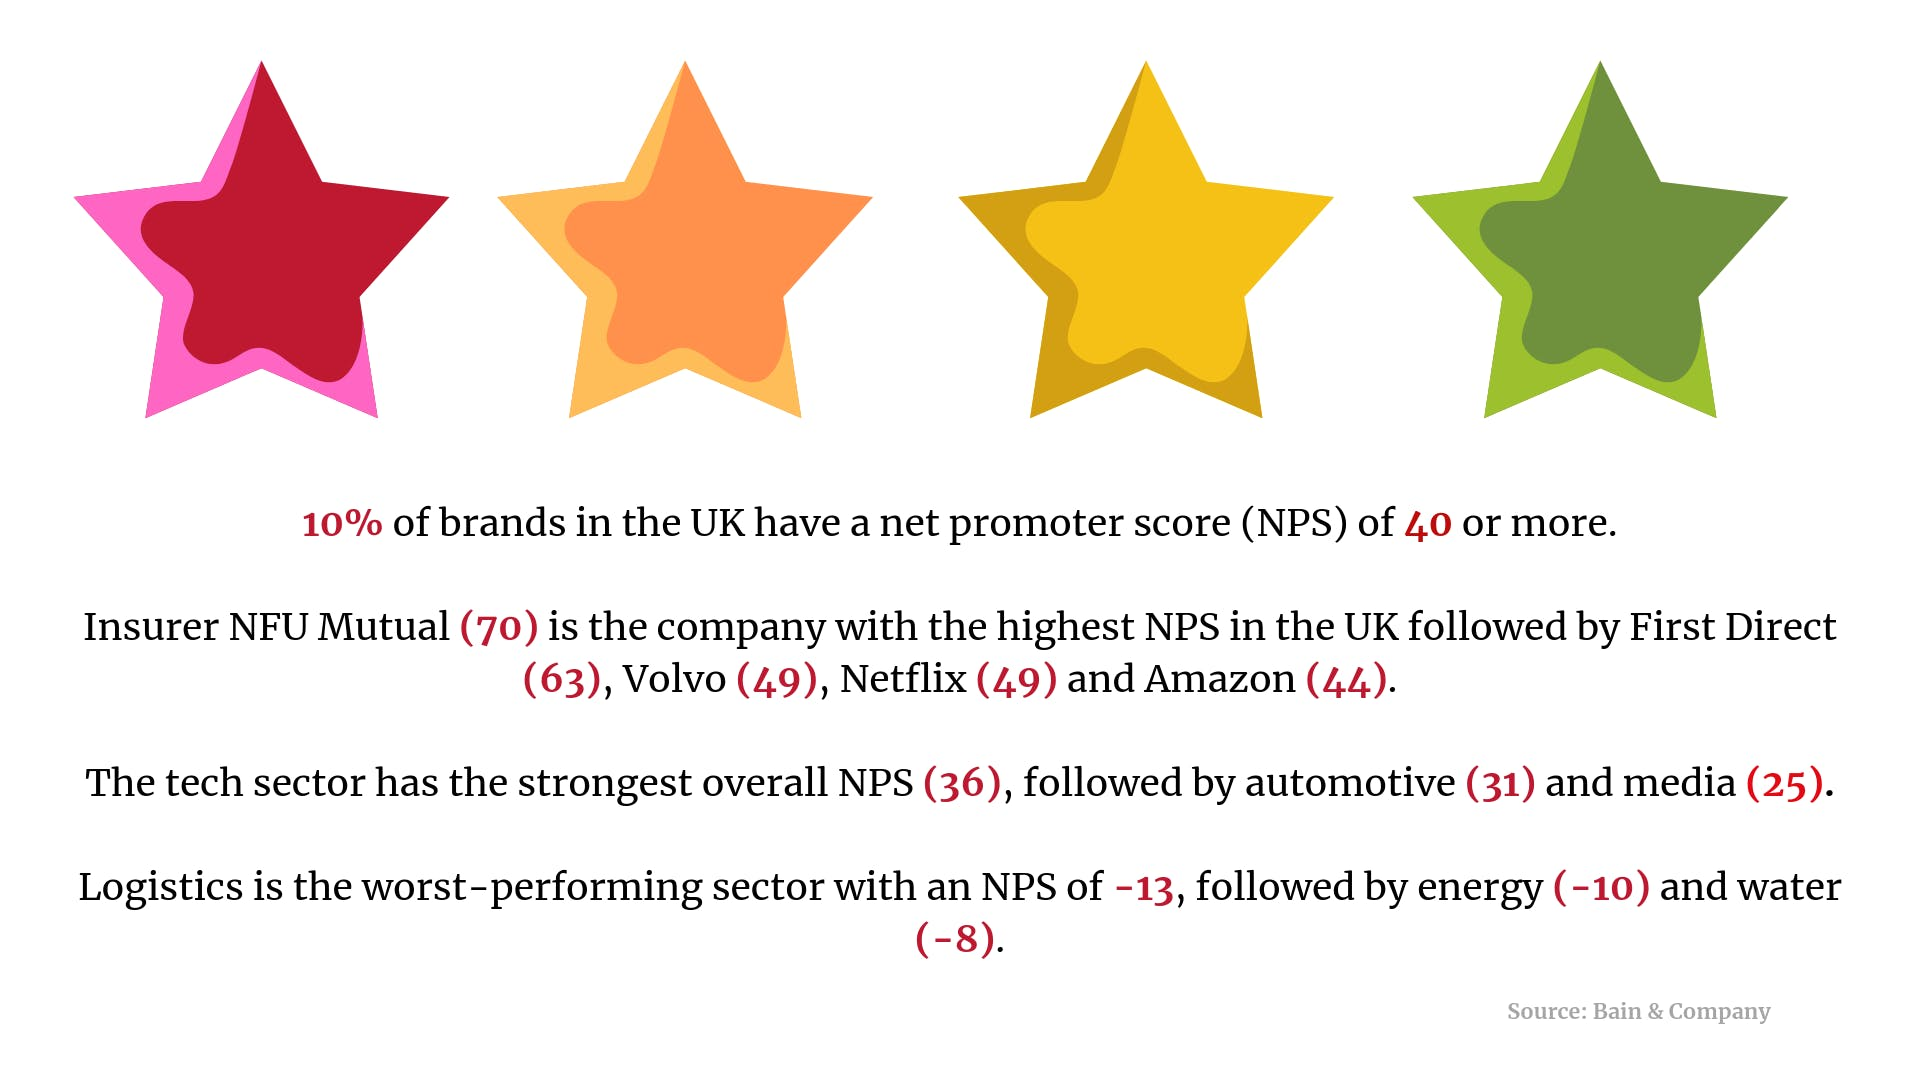 NPS, footfall, martech: 5 killer stats to start your week